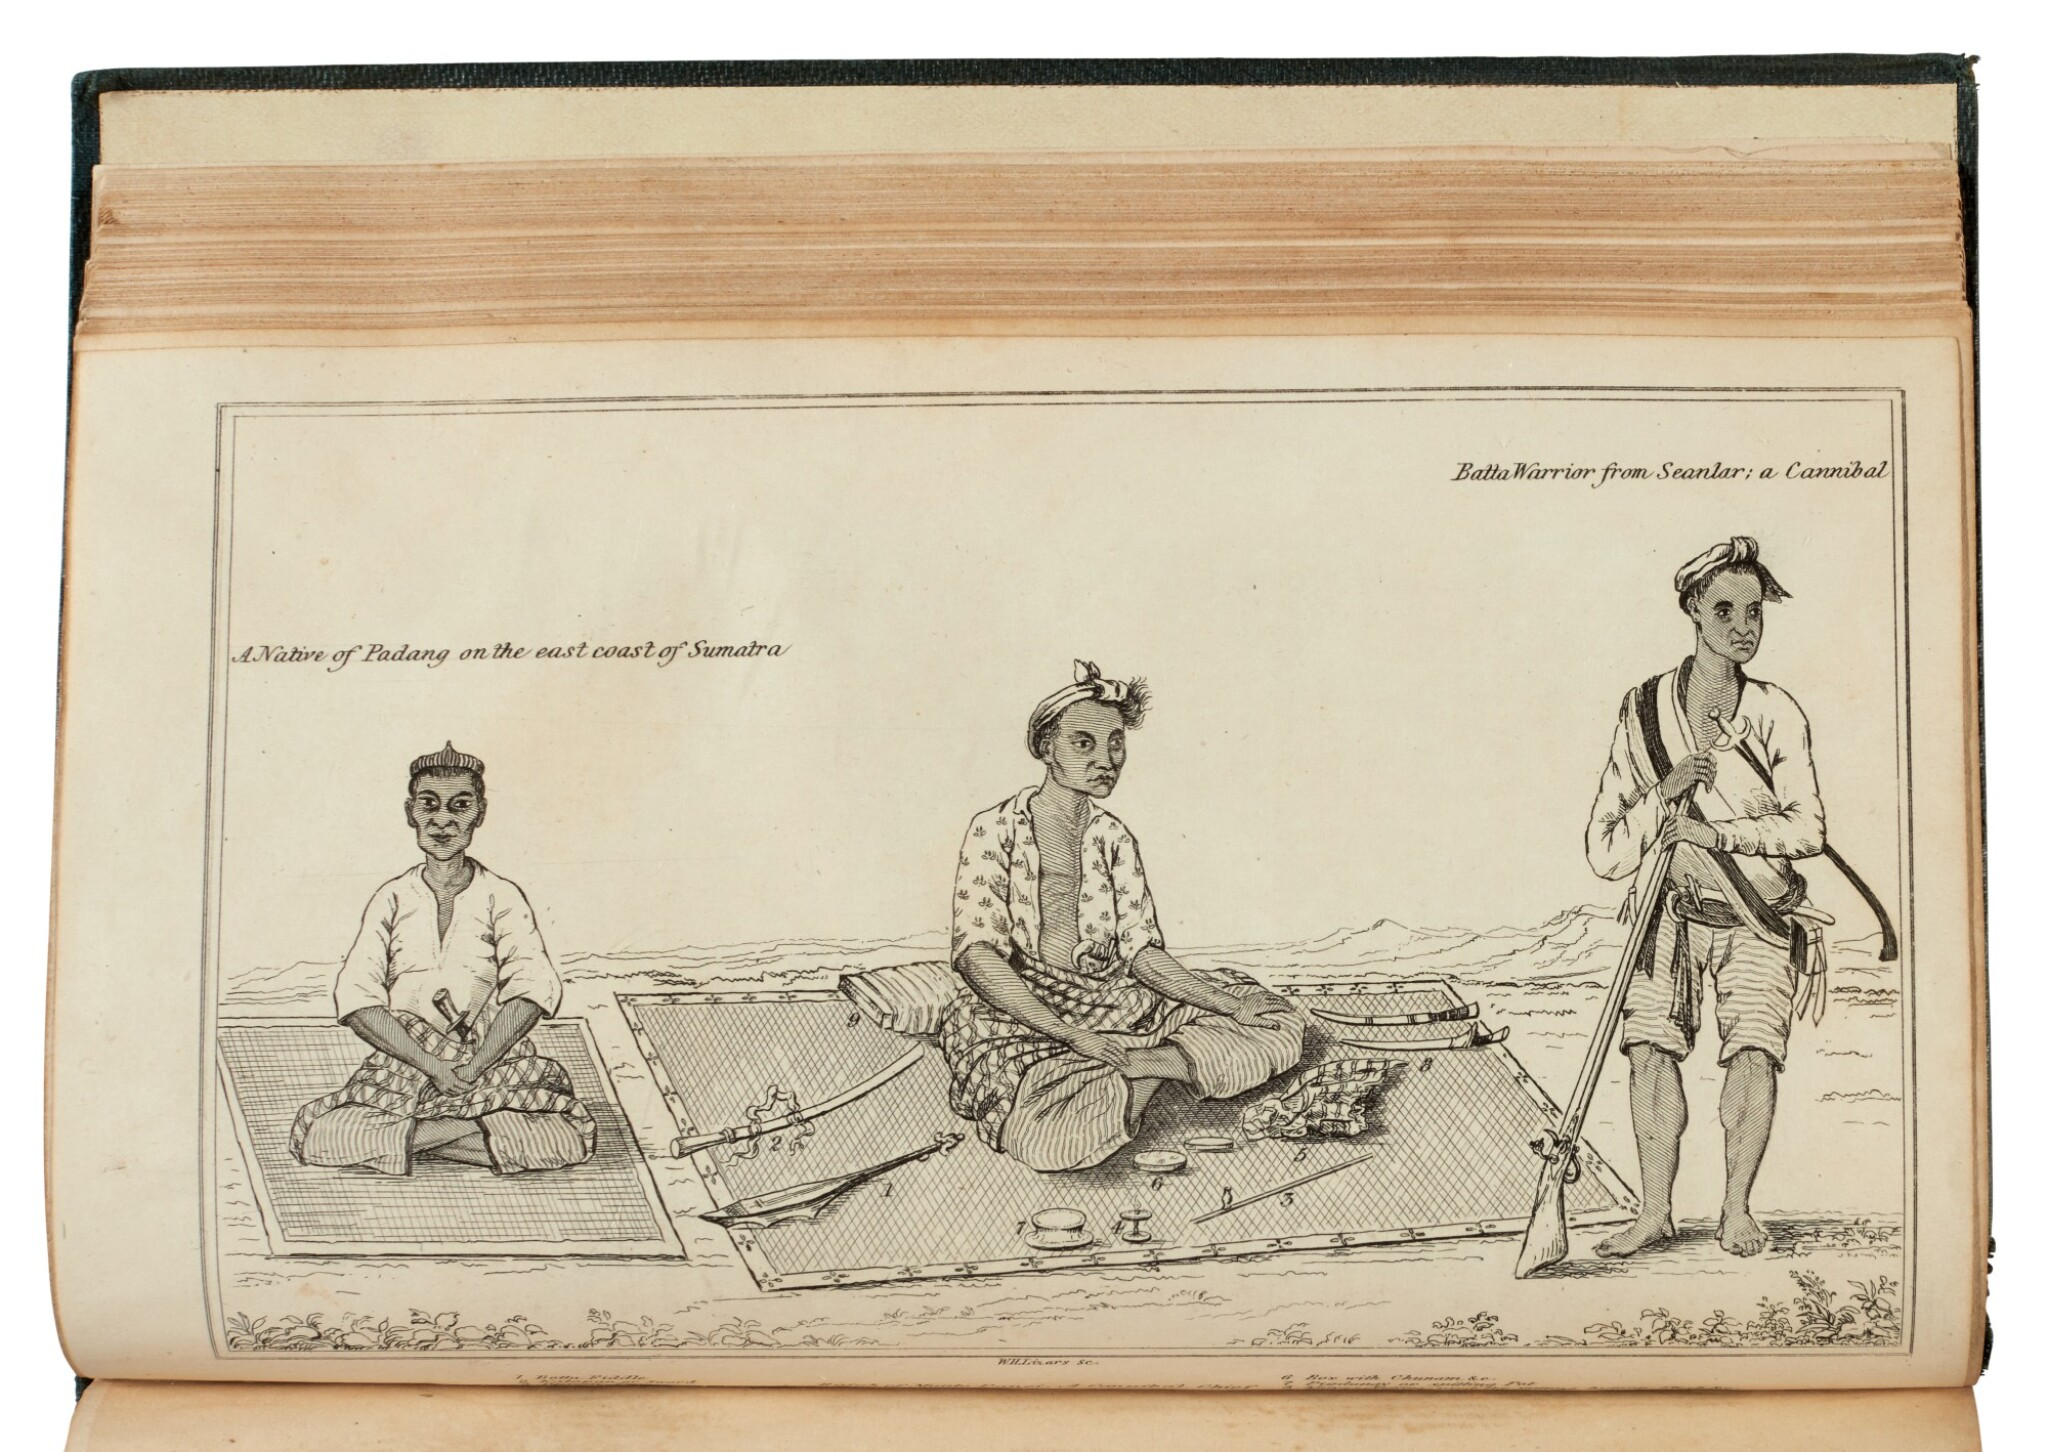 View full screen - View 1 of Lot 160. John Anderson   Mission to the east coast of Sumatra, 1826, Brooke-Hitching copy.